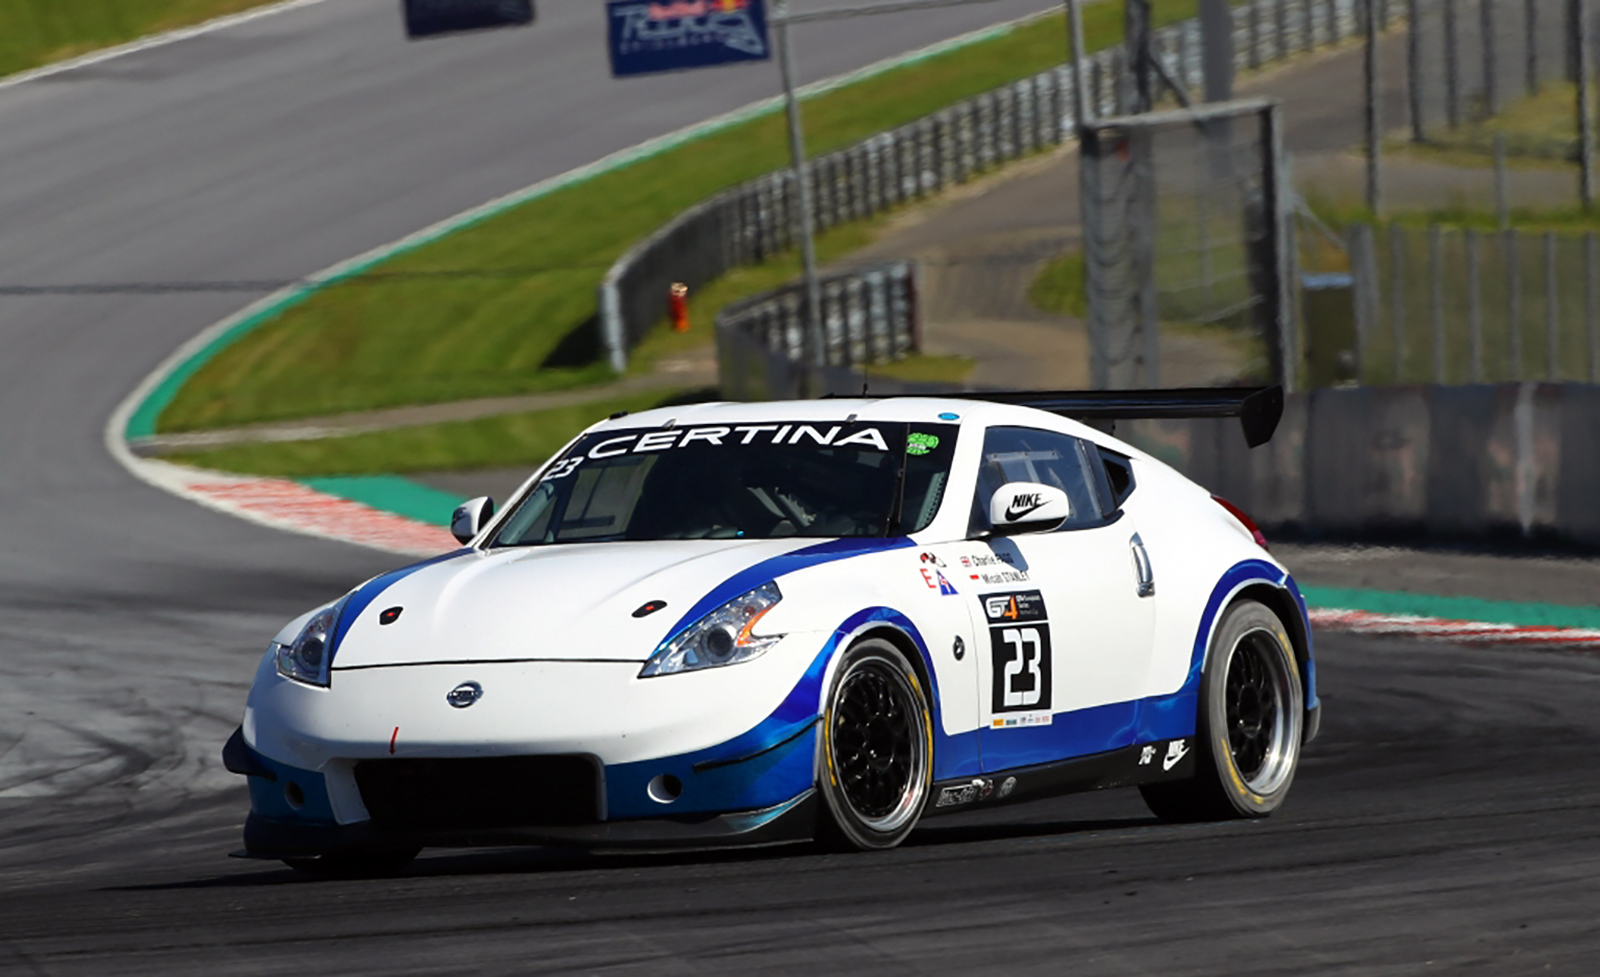 Professional performance from Charlie Fagg on first visit to Red Bull Ring.